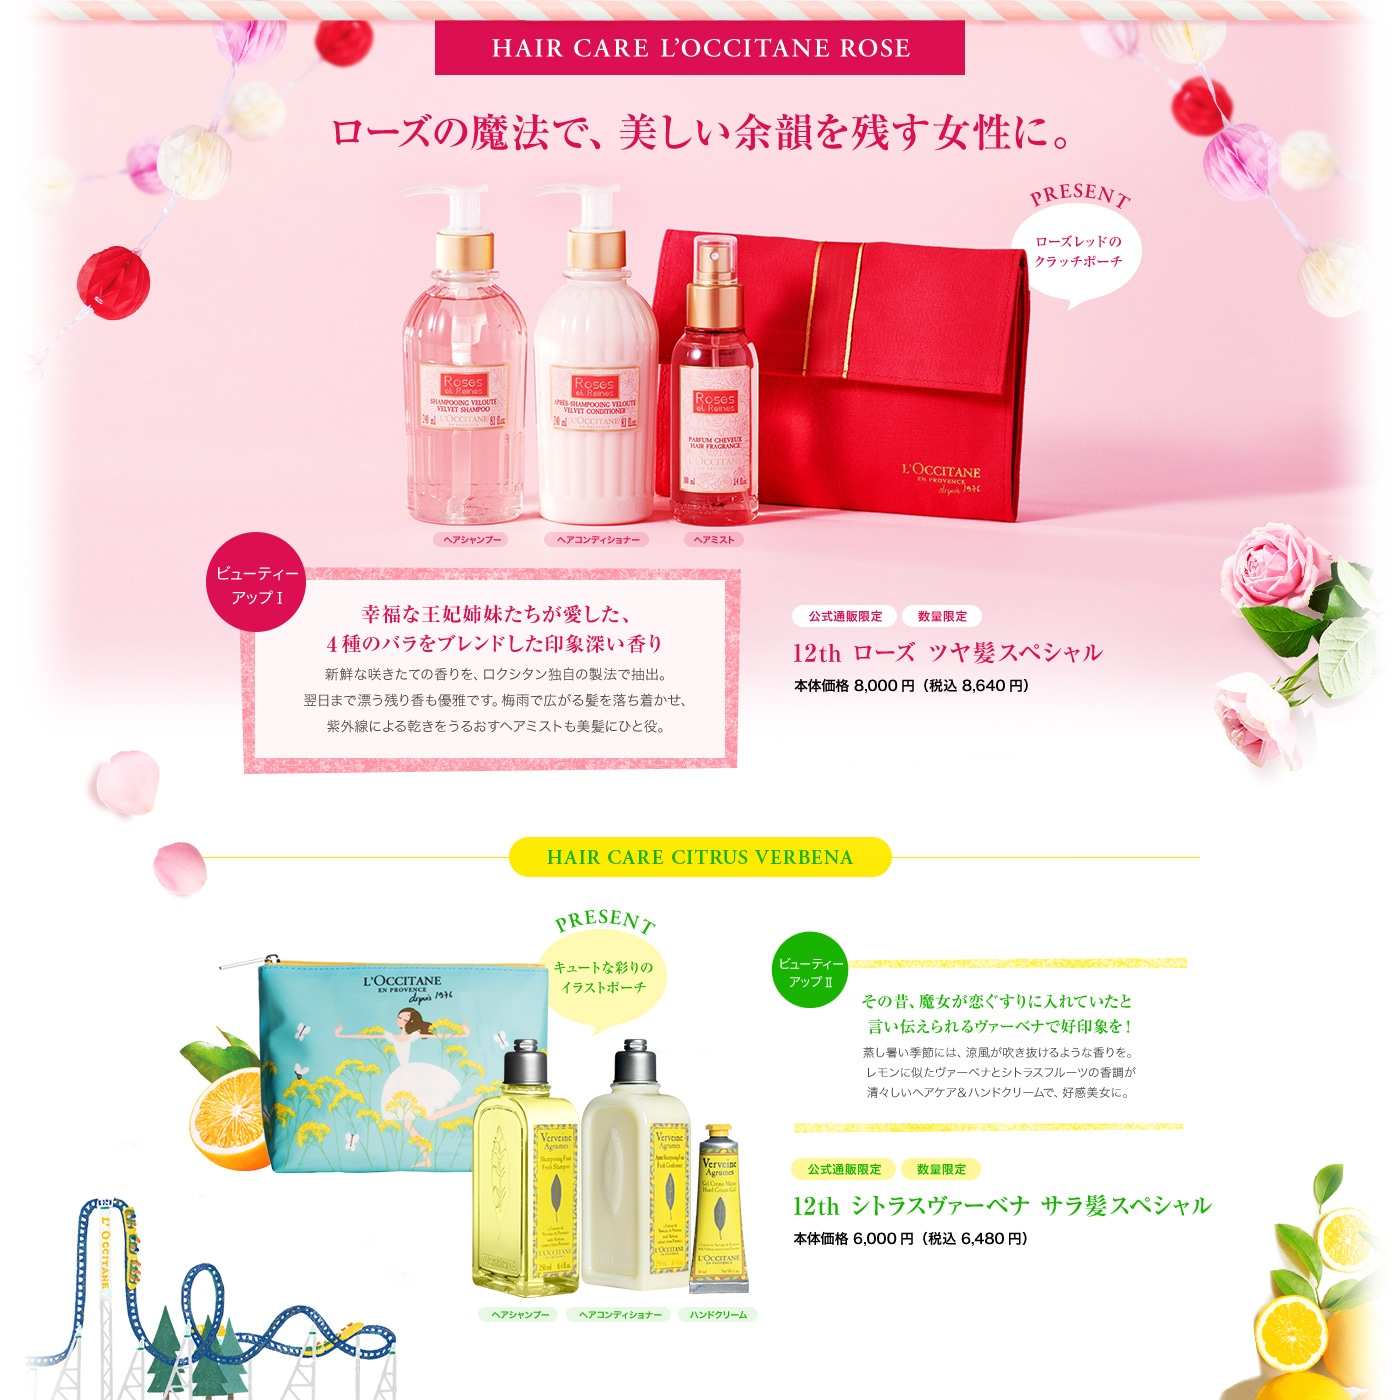 HAIR CARE L'OCCITANE ROSE